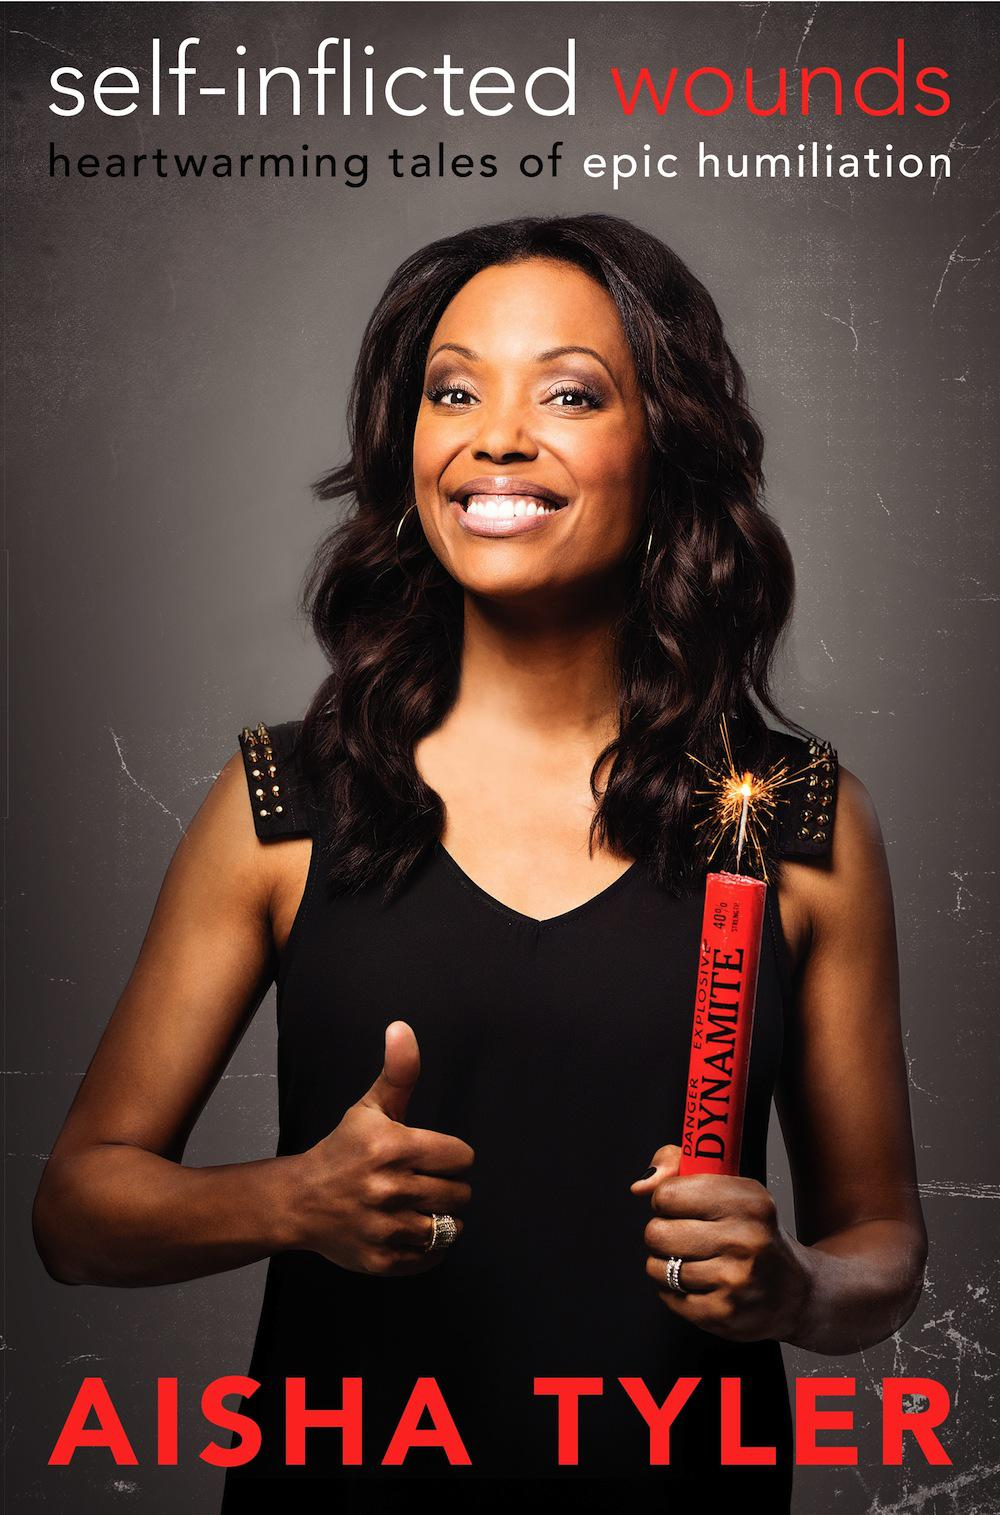 Aisha Tyler On Self-Inflicted Wounds, Career, And The Power Of Mistakes-5453